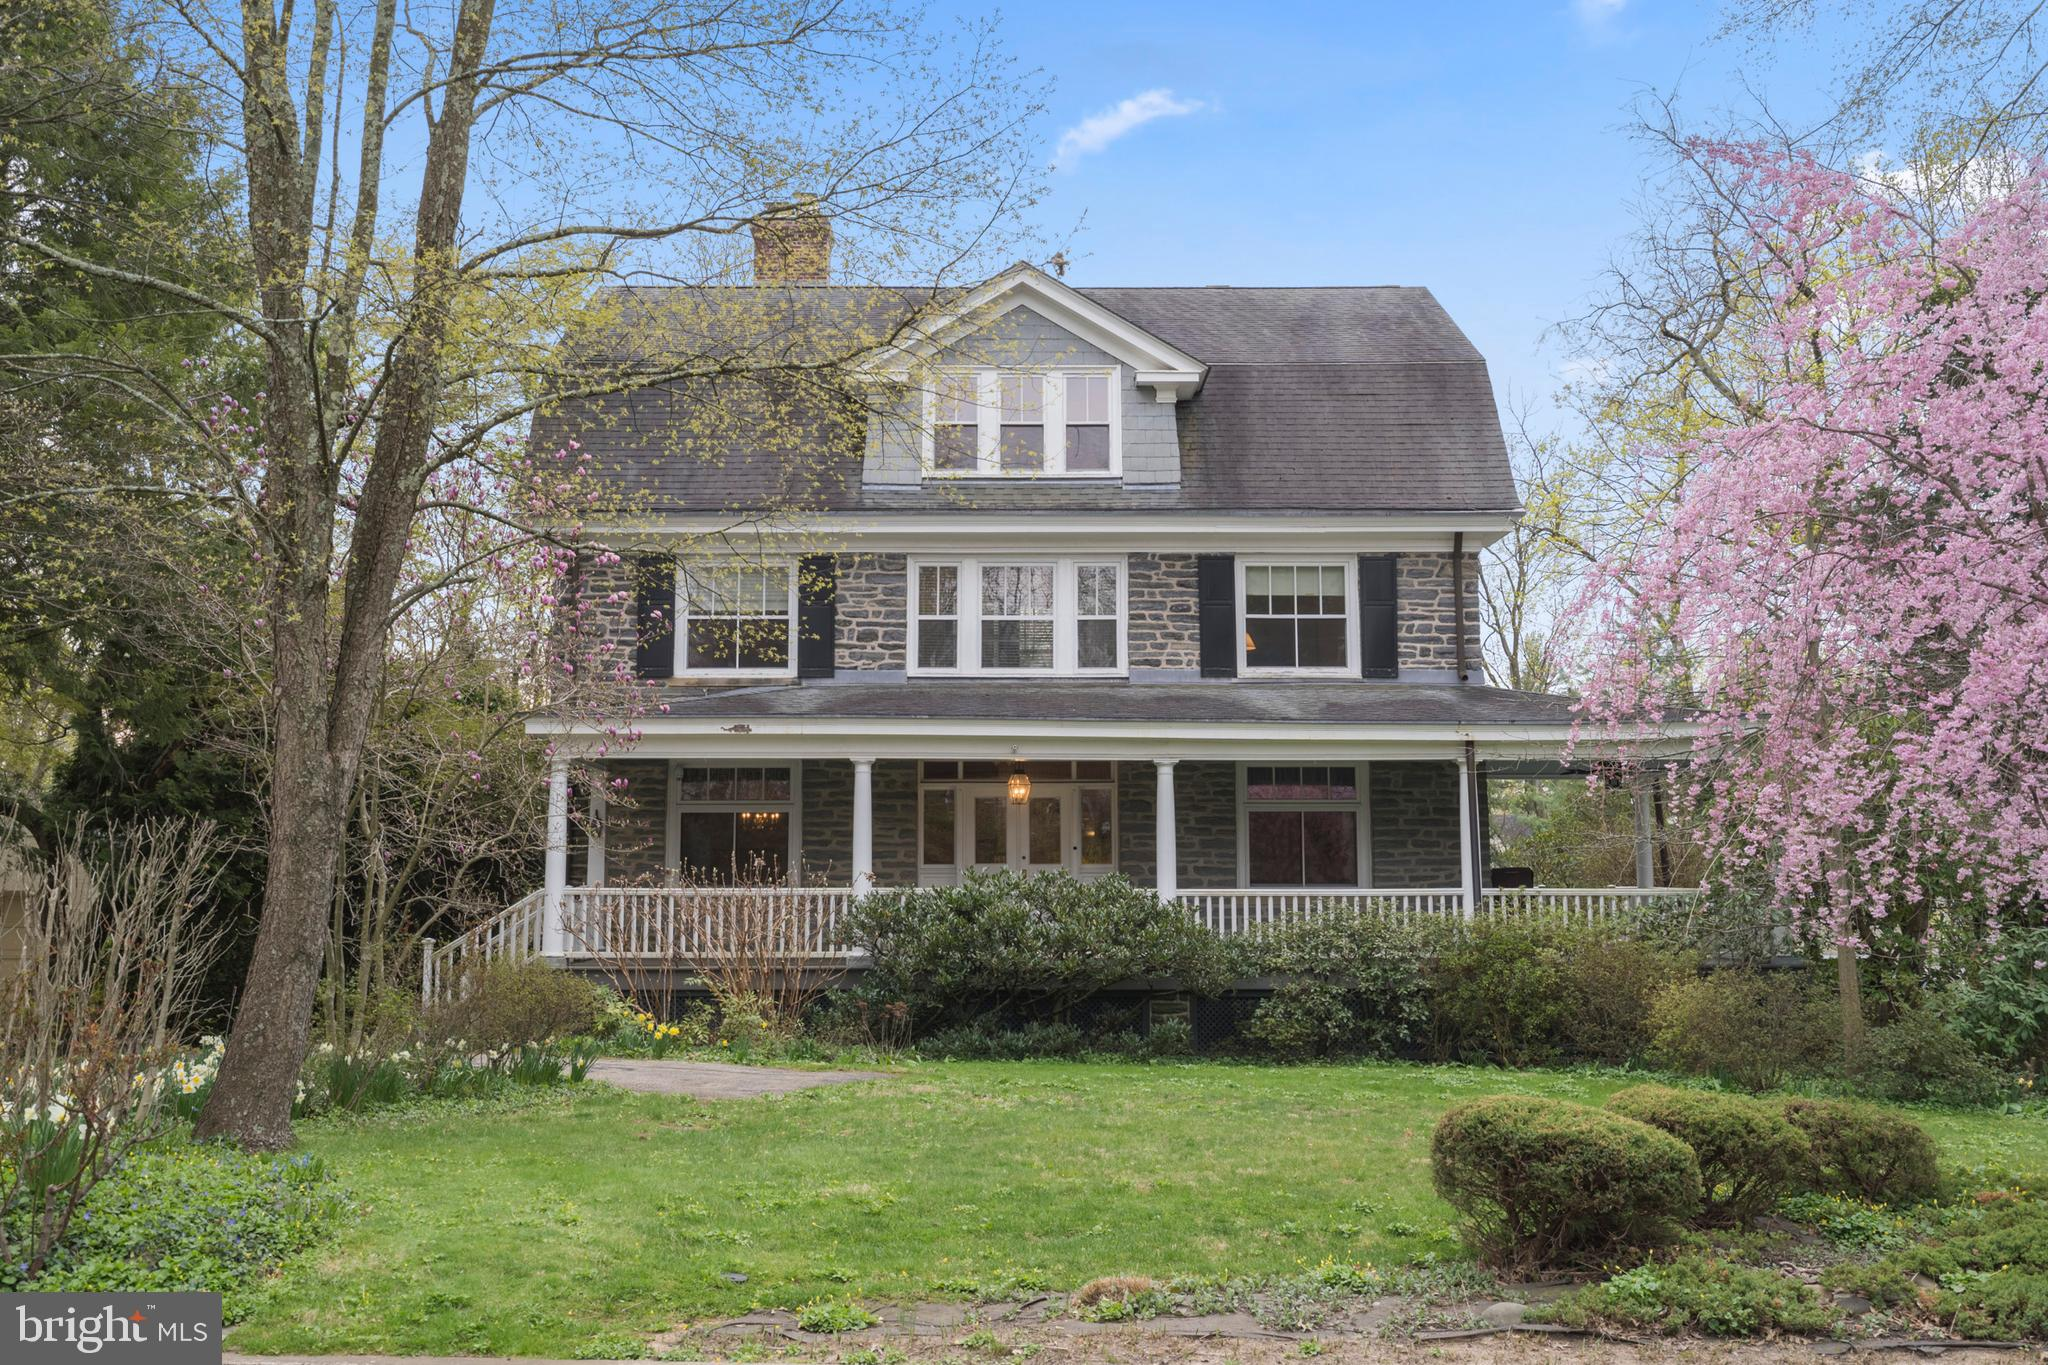 "Here is your opportunity to own a Fabulous Queen Anne stone colonial in a ""walk to"" location.(Haverford College, R-100, R-5, Haverford Square).  Have a porch party on this wonderful wraparound porch.  Enjoy the  premier plantings throughout the landscape year round.  The period double doors welcome you to the Foyer;  you notice the grace and beauty of the staircase.  Huge windows provide amazing light throughout the home.  To the right is a front to rear living room w/window seat and  offset fireplace.  To the left is the dining room with built in cabinet and fireplace. Behind the DR is the kitchen with breakfast area. The laundry, mudroom, storage and outside exit to driveway and 3 car garage is just behind the breakfast area.  The kitchen has great counter space and a cook's layout. It opens  to the family room with built-ins.  Also from the kitchen is access to rear stairs and the center hall. From there you can go down to LL and basement. Back to the front door and up the beautiful stairway to 3 full bedrooms.  The owner's suite with fp, 3 closets including 1 large walk-in closet, sitting room and private bathroom.  There is a second large bedroom with sitting room attached and built ins. The hall bath bath is generous and serves the other 2 bedrooms on the second flr.  The large 3rd bedroom is currently used as an oversized office. This room has a beautiful fireplace.  All have amazing light. Up the wide and gracious stairs to the third floor which has high ceilings and you  find 3 more bedrooms and a bath. One bedroom has incredible light and was at one time used as an art studio. It has a utility sink.  Lots of closet space in these third floor bedrooms. The current owner added a generator just last year behind the detached 3 car garage.  The home needs to be renovated, but with some work, it will be the gem of Haverford!  Open Sunday 2-4. First showings begin Saturday, April 17th at 10 am."